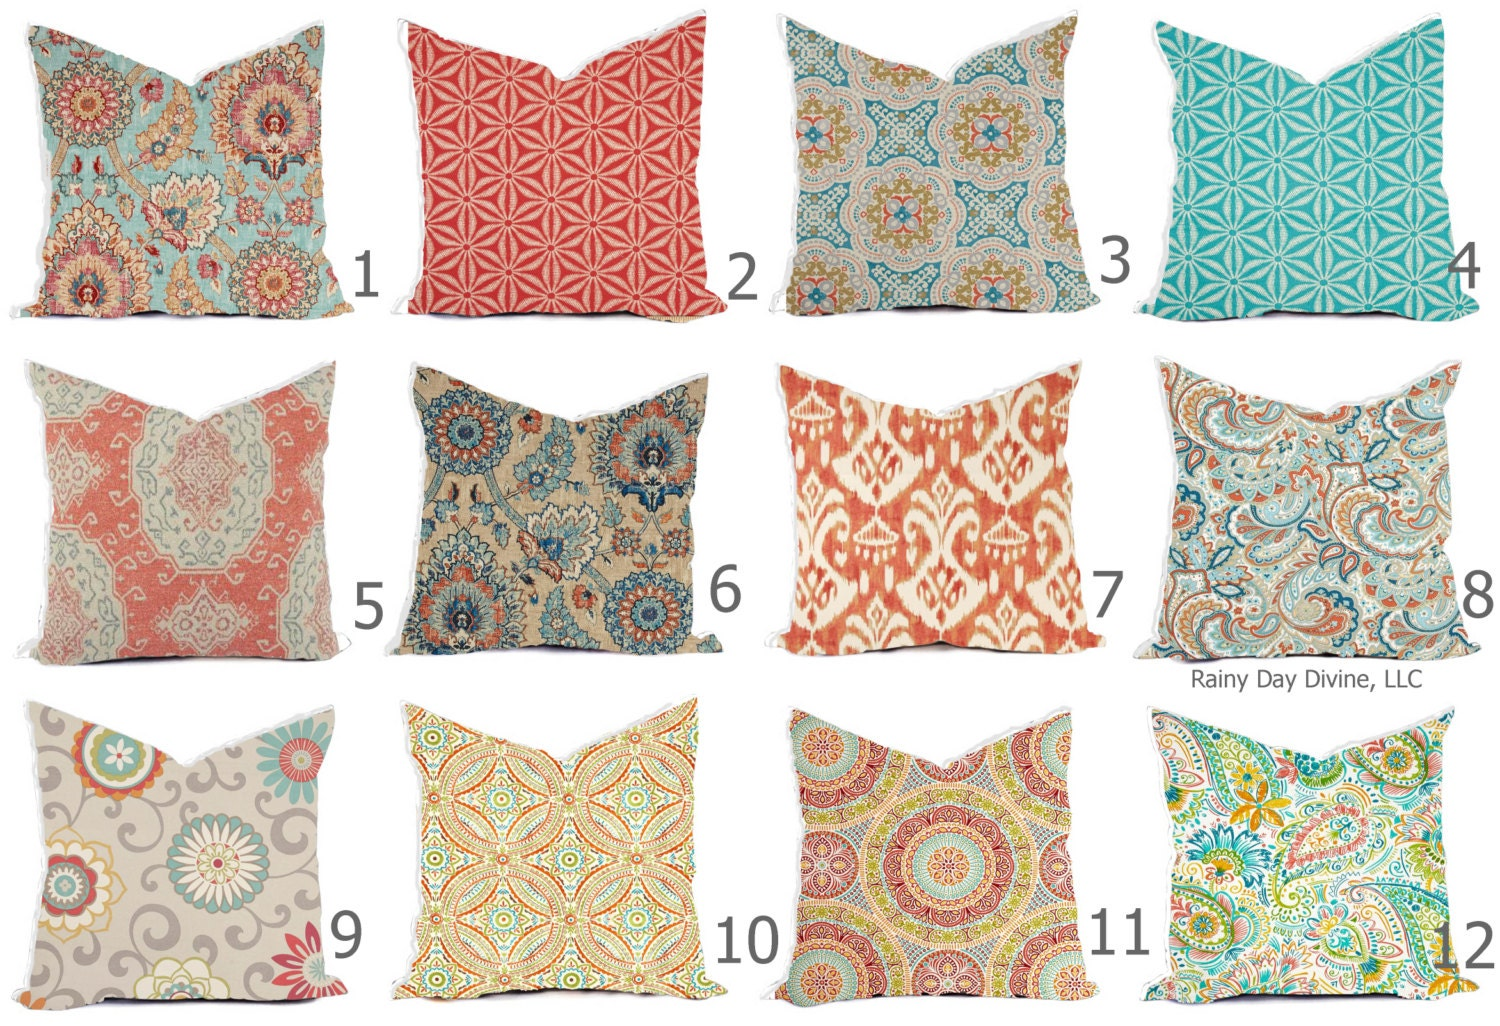 Pillows Covers Outdoor / Indoor Pillow Covers Custom 20x20, 20x20 ...